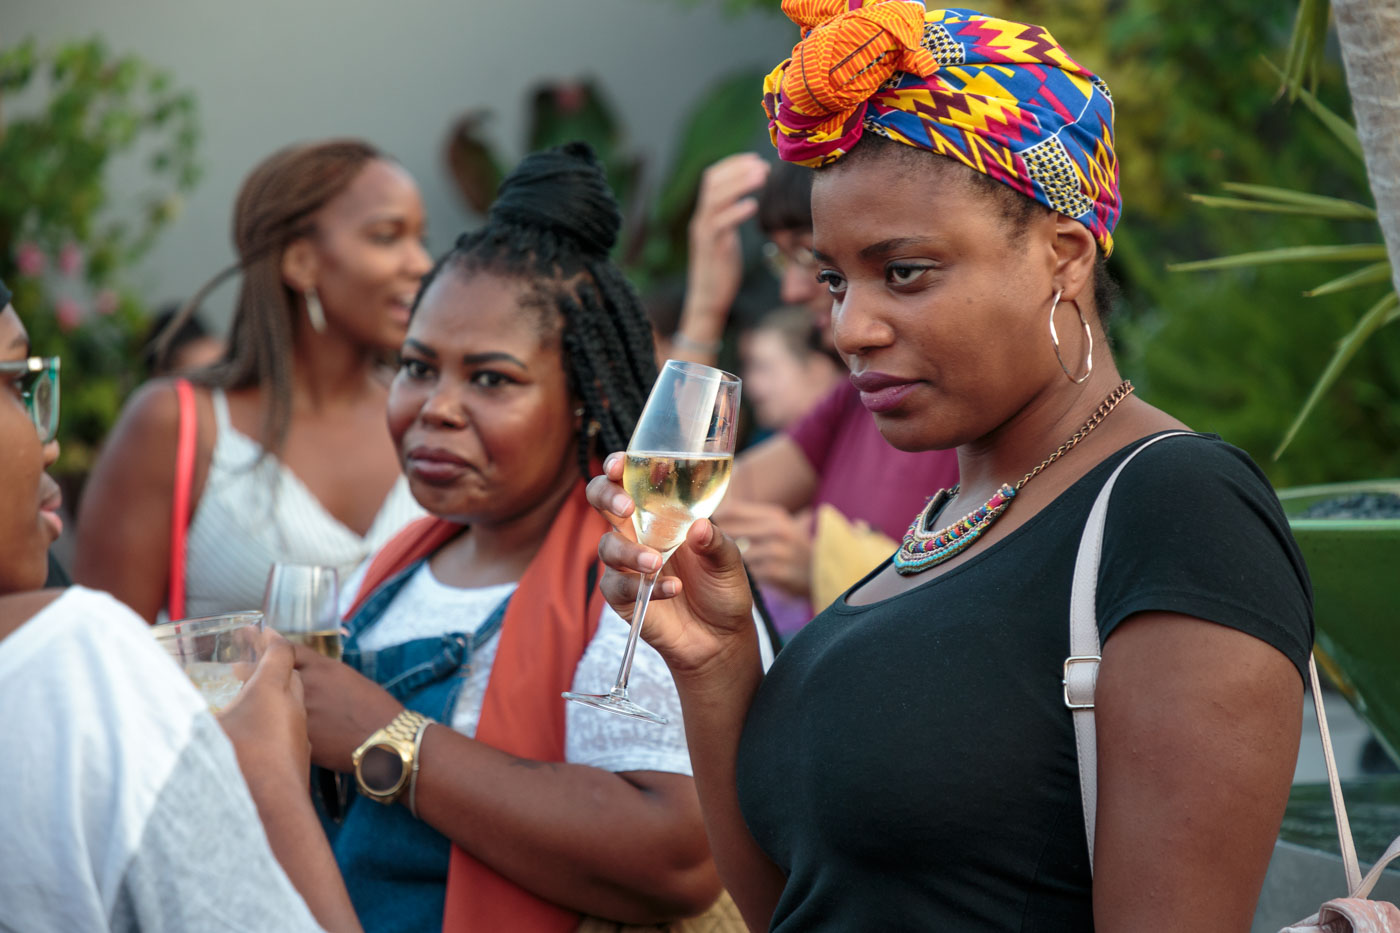 Sip and Mingle_Addison Green_1400px-1053.jpg